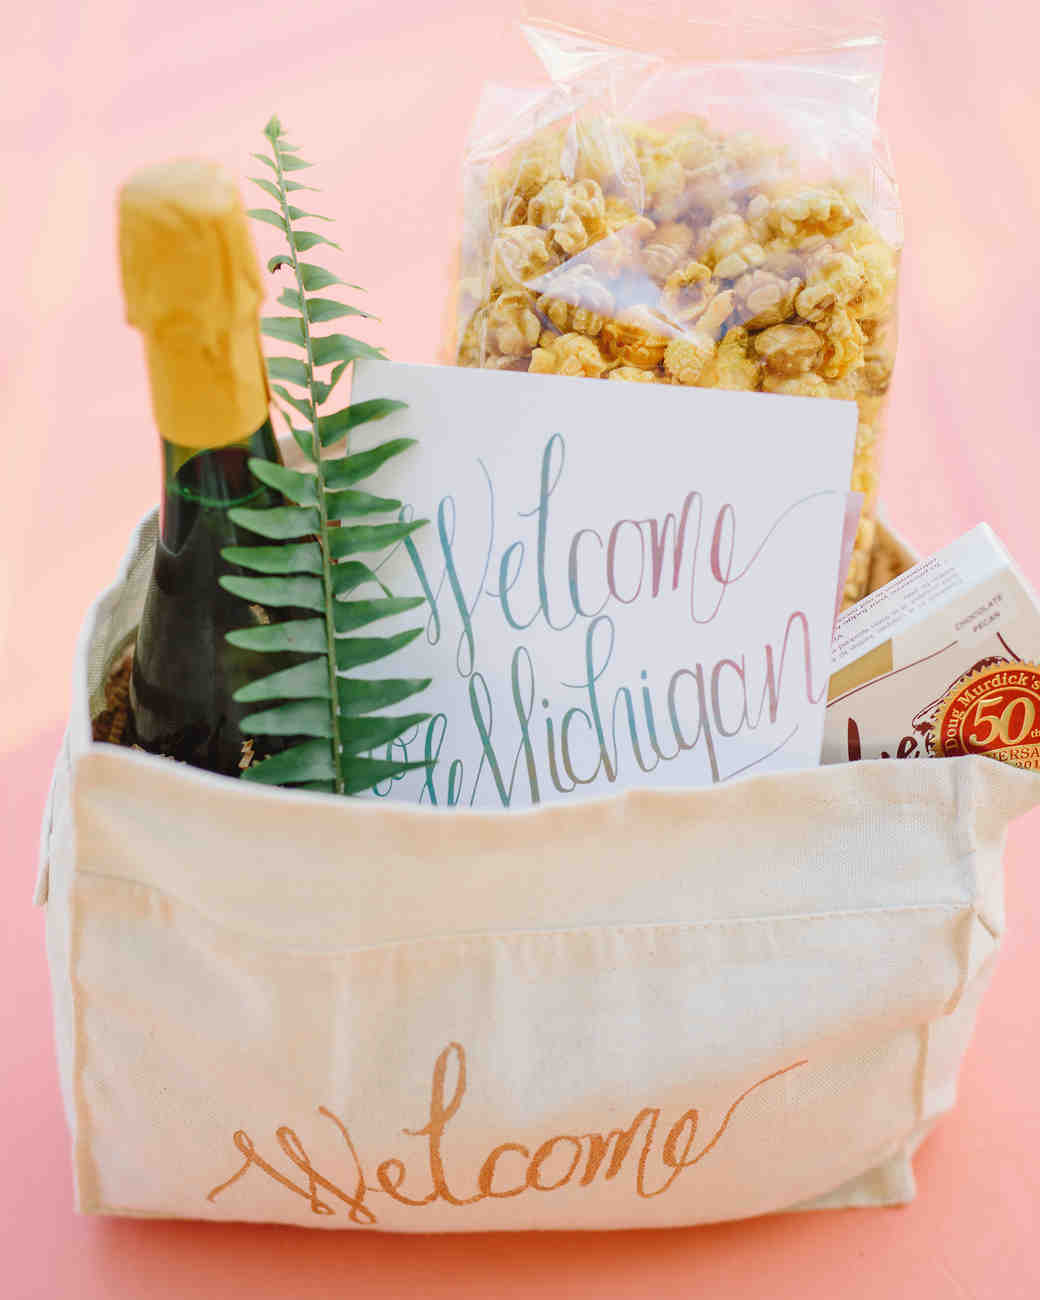 Welcome To Our Wedding Weekend Gift Bags: Fresh Ideas For Your Wedding Weekend